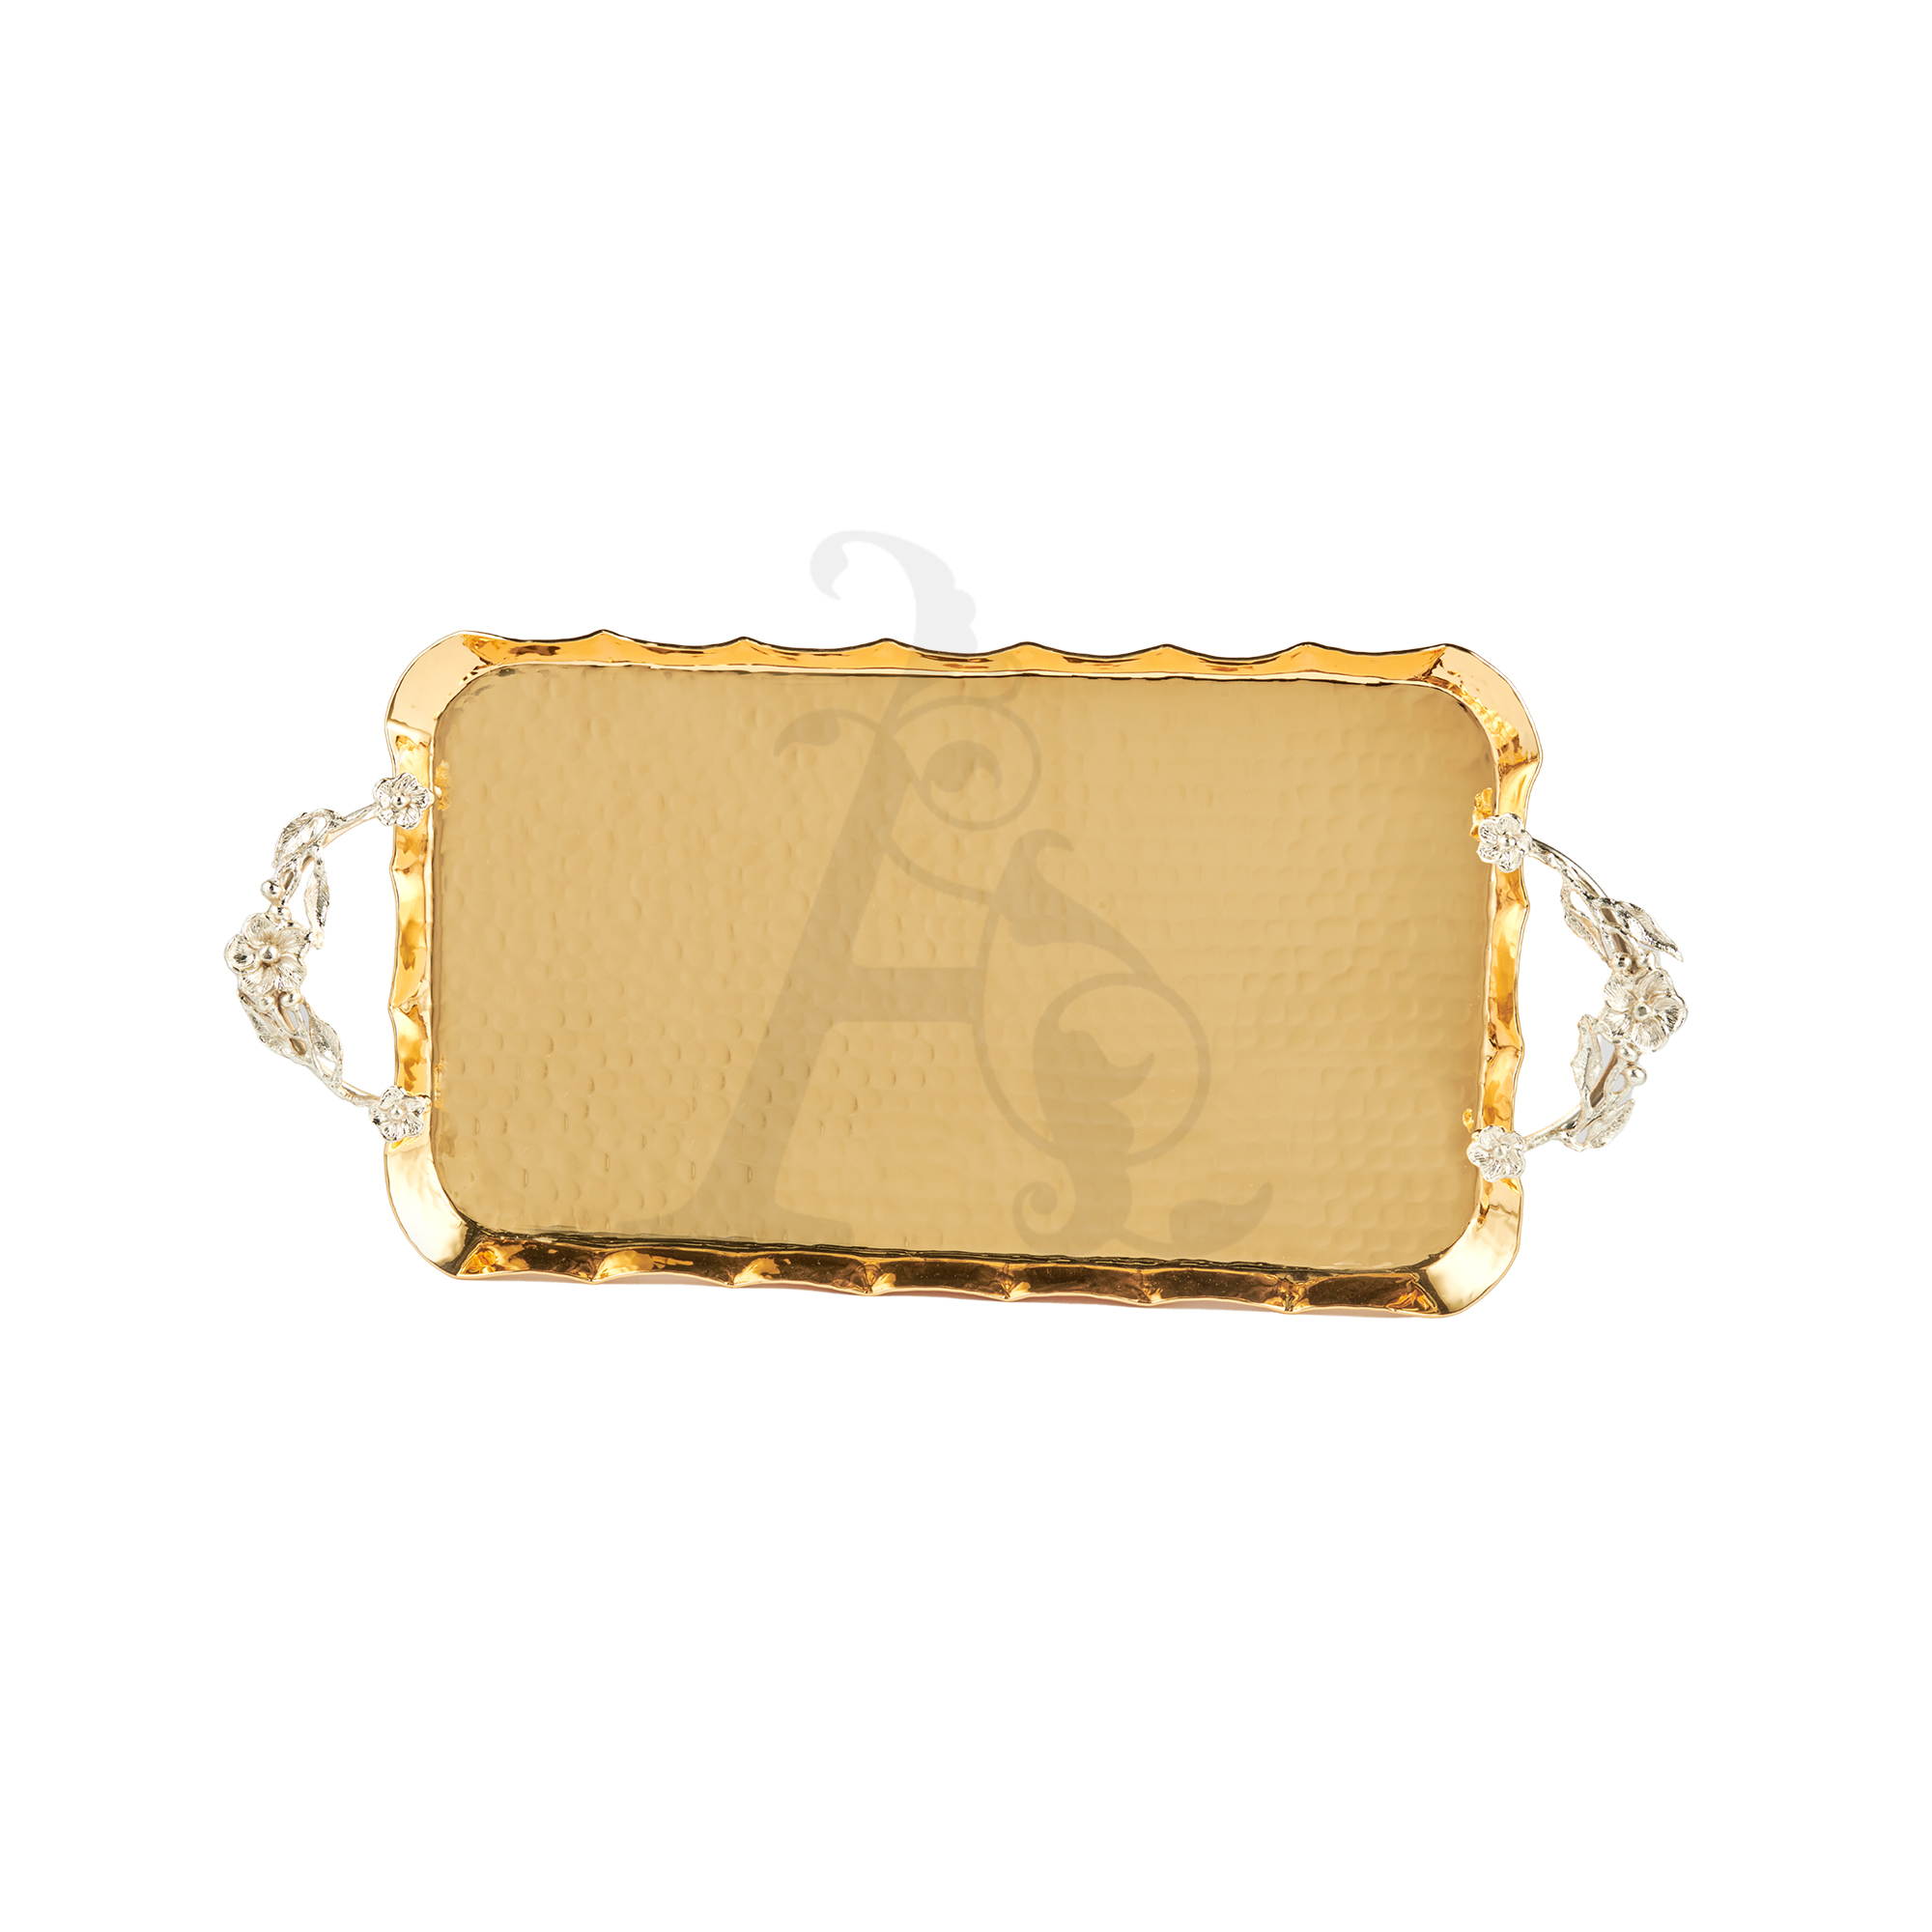 Buy Turkish Floral Gold Serving Tray - 60x33cm